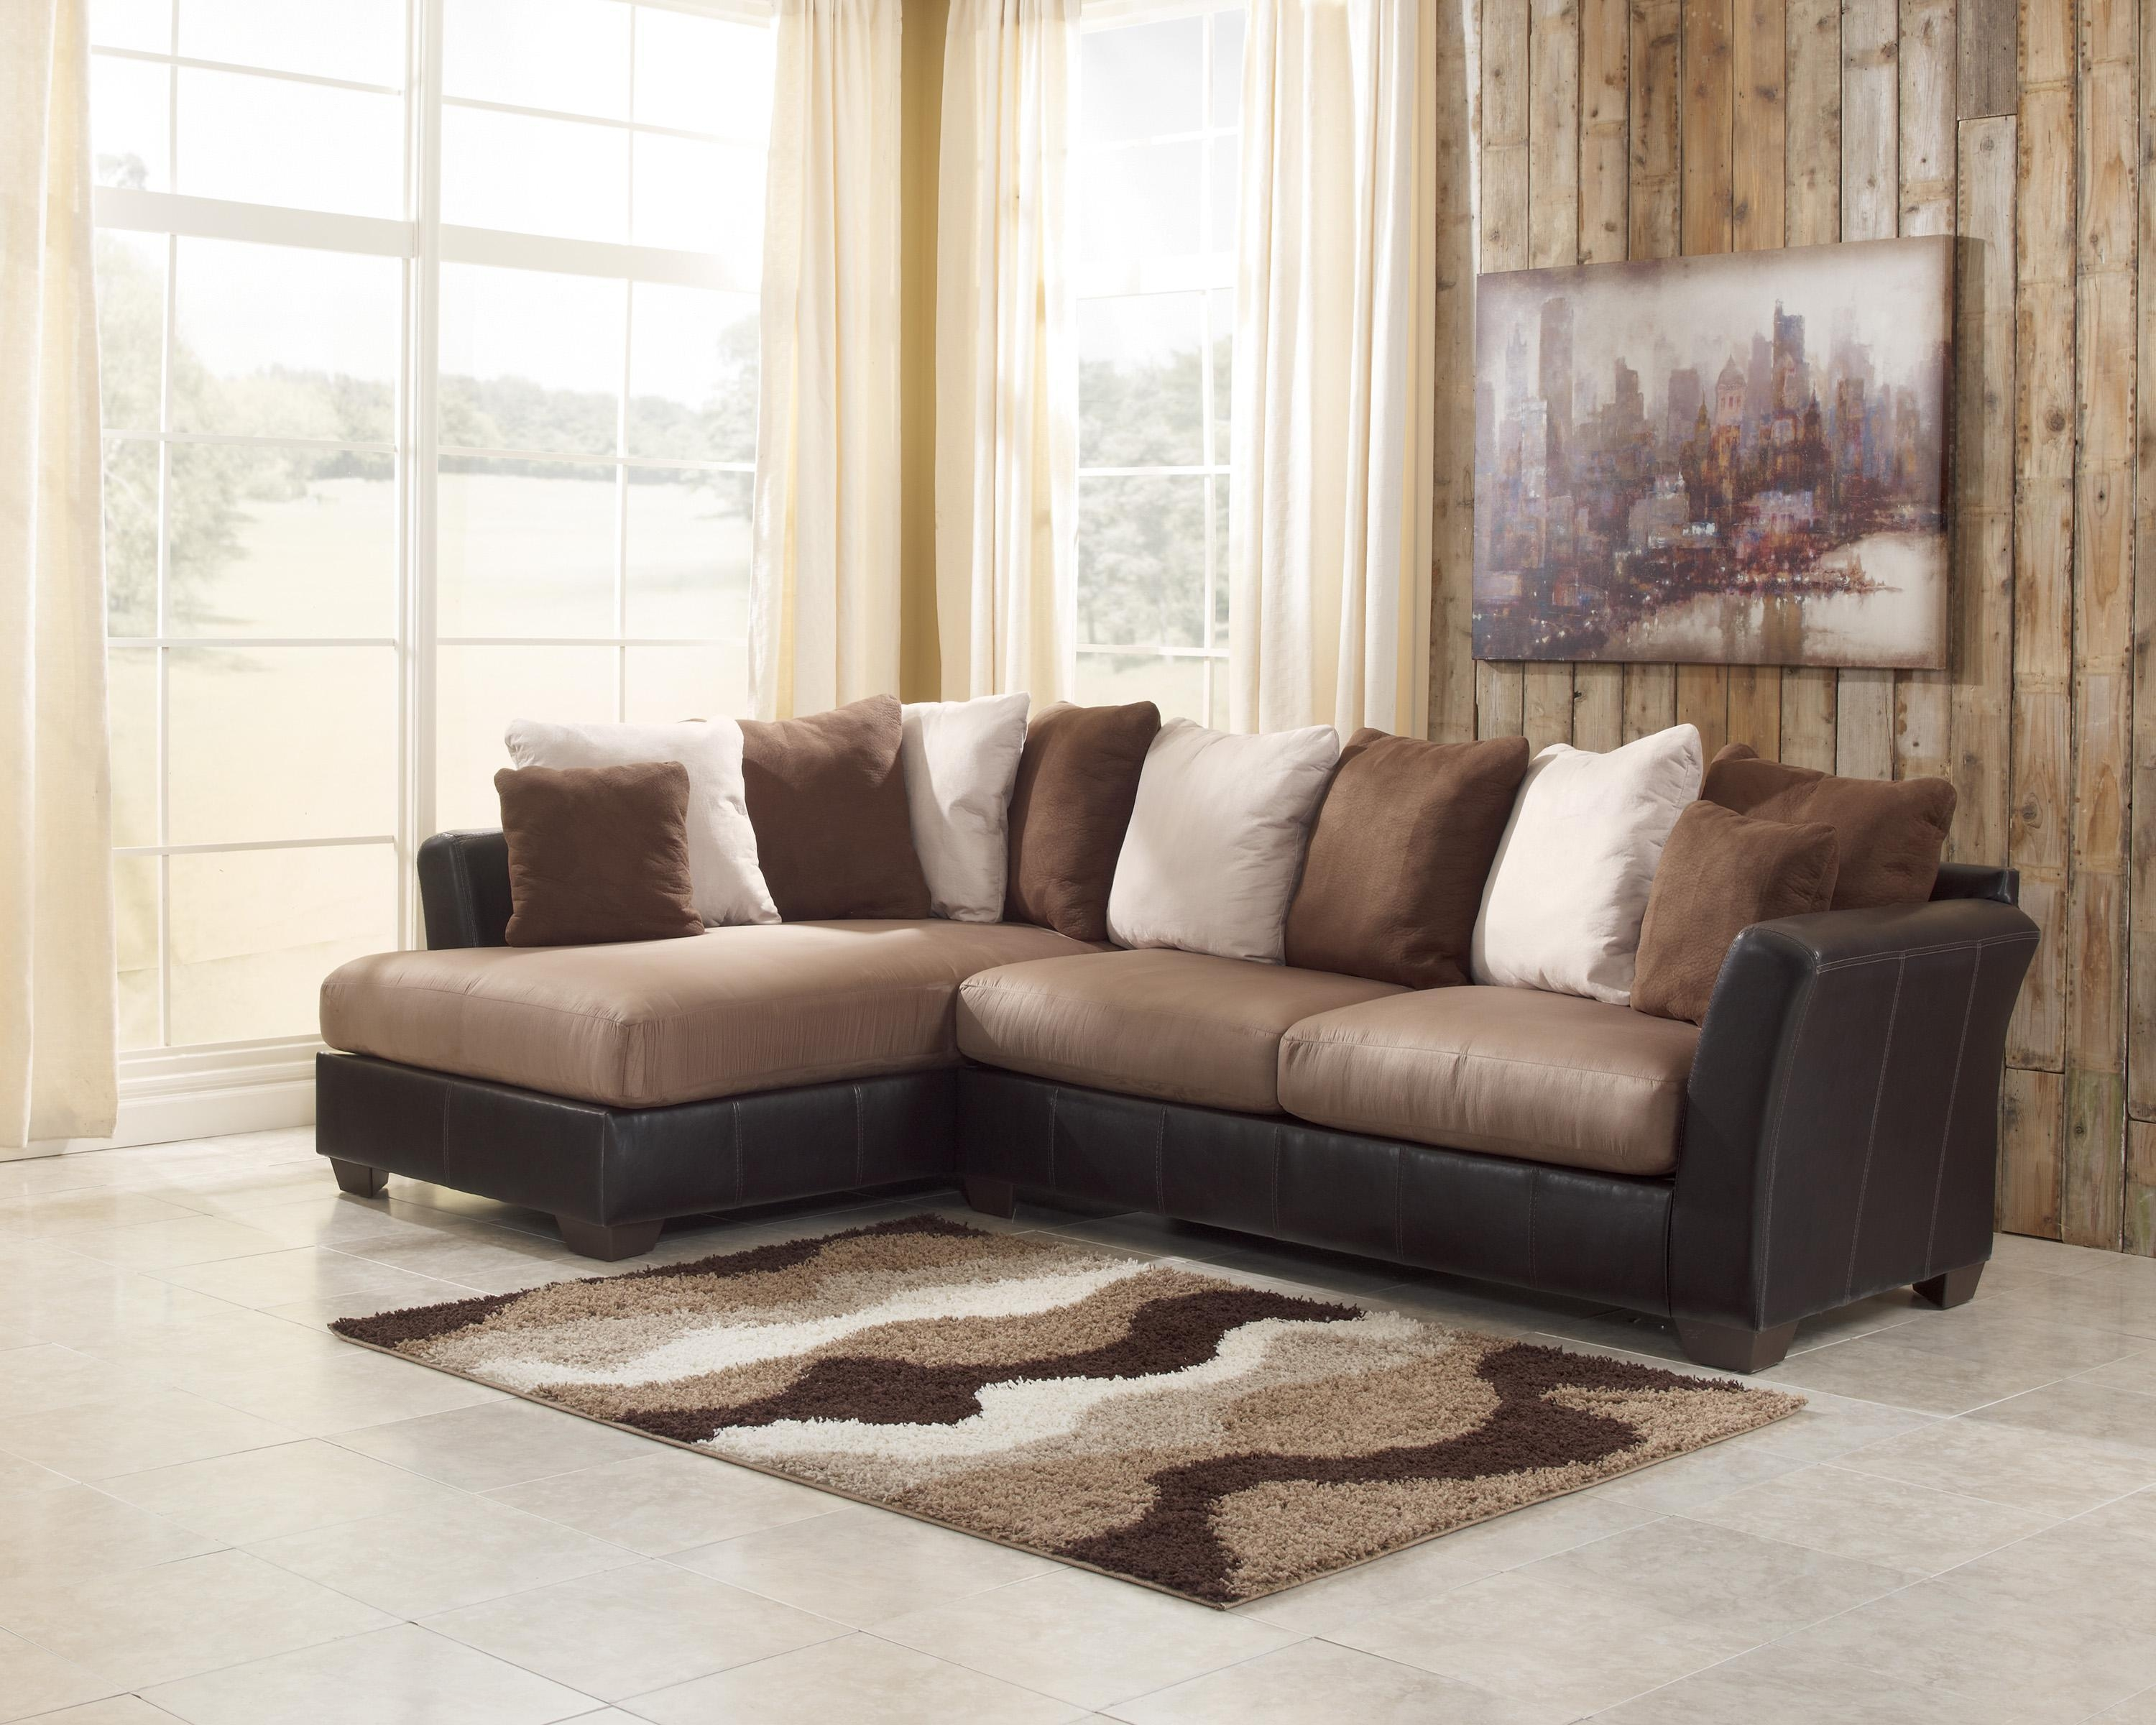 Featured Image of Individual Piece Sectional Sofas